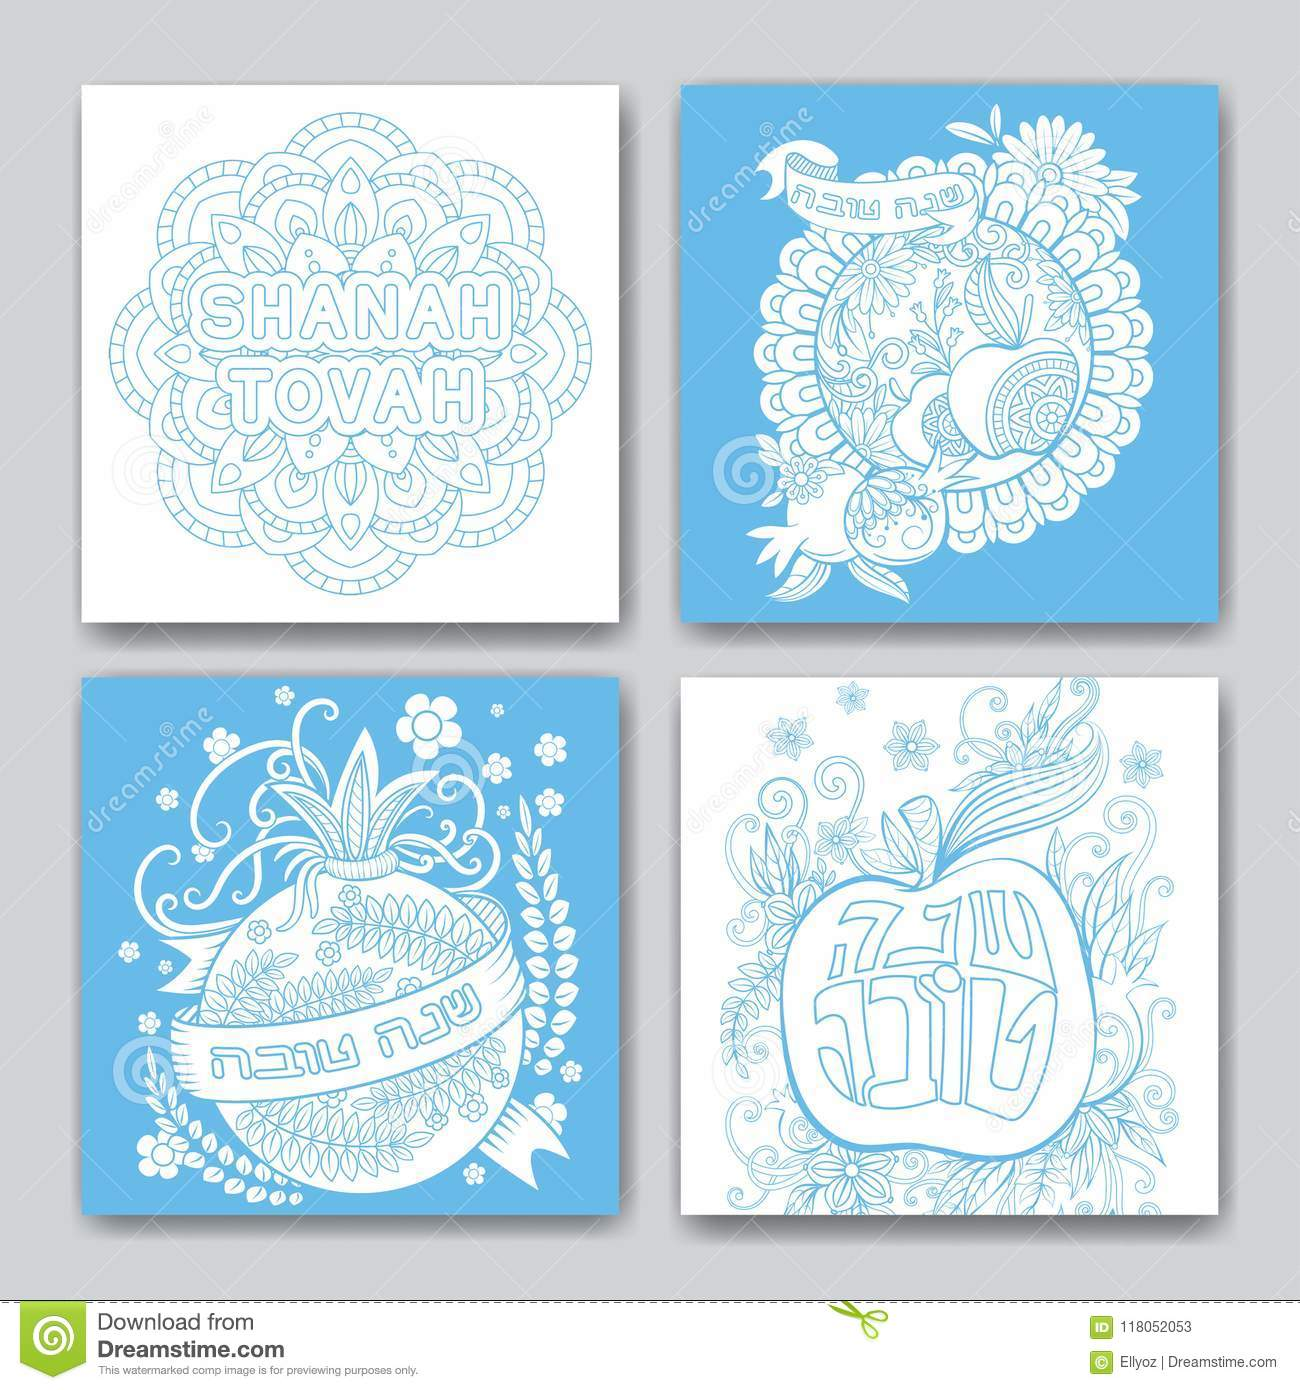 Rosh hashanah cards collection stock vector illustration of download rosh hashanah cards collection stock vector illustration of ornament happy 118052053 download comp m4hsunfo